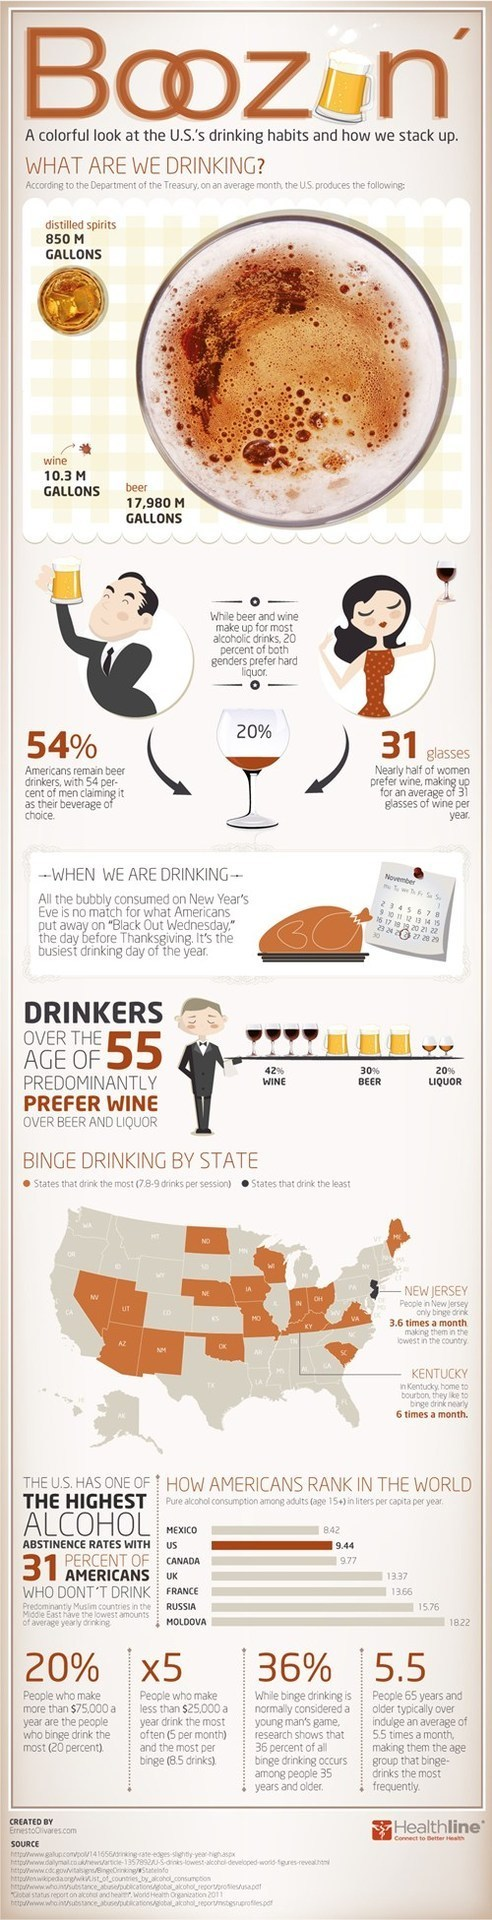 drinking habits,what are we drinking,utah,infographic